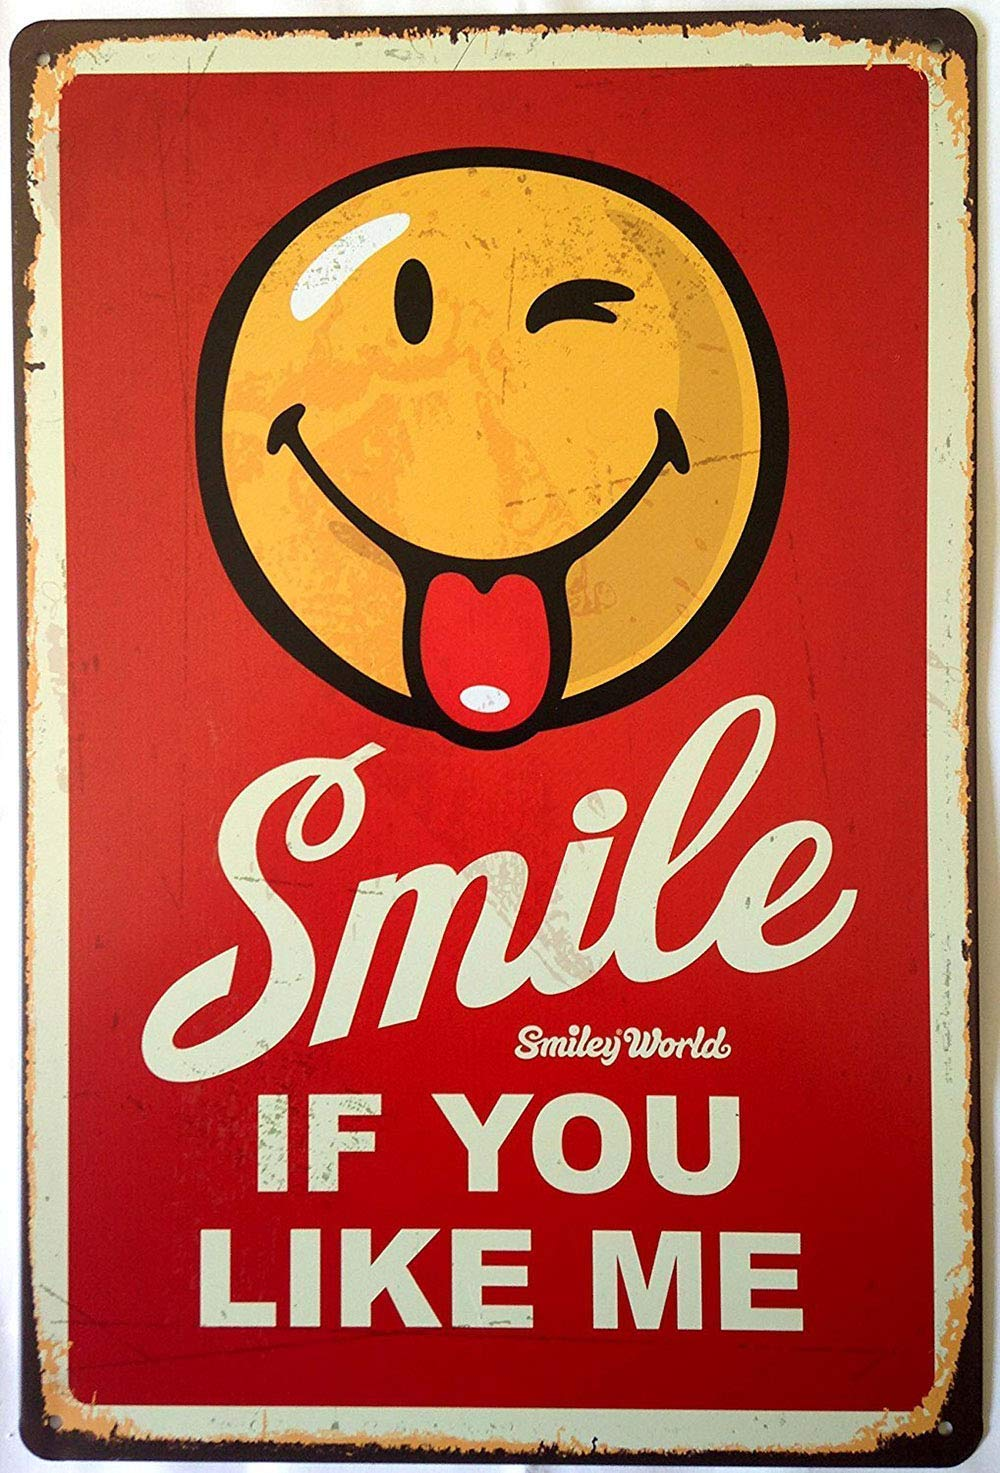 Jesiceny Great Tin Sign Aluminum Please Report to Thechool Office Upon Arrival Outdoor /& Indoor Sign Wall Decoration 12x8 INCH